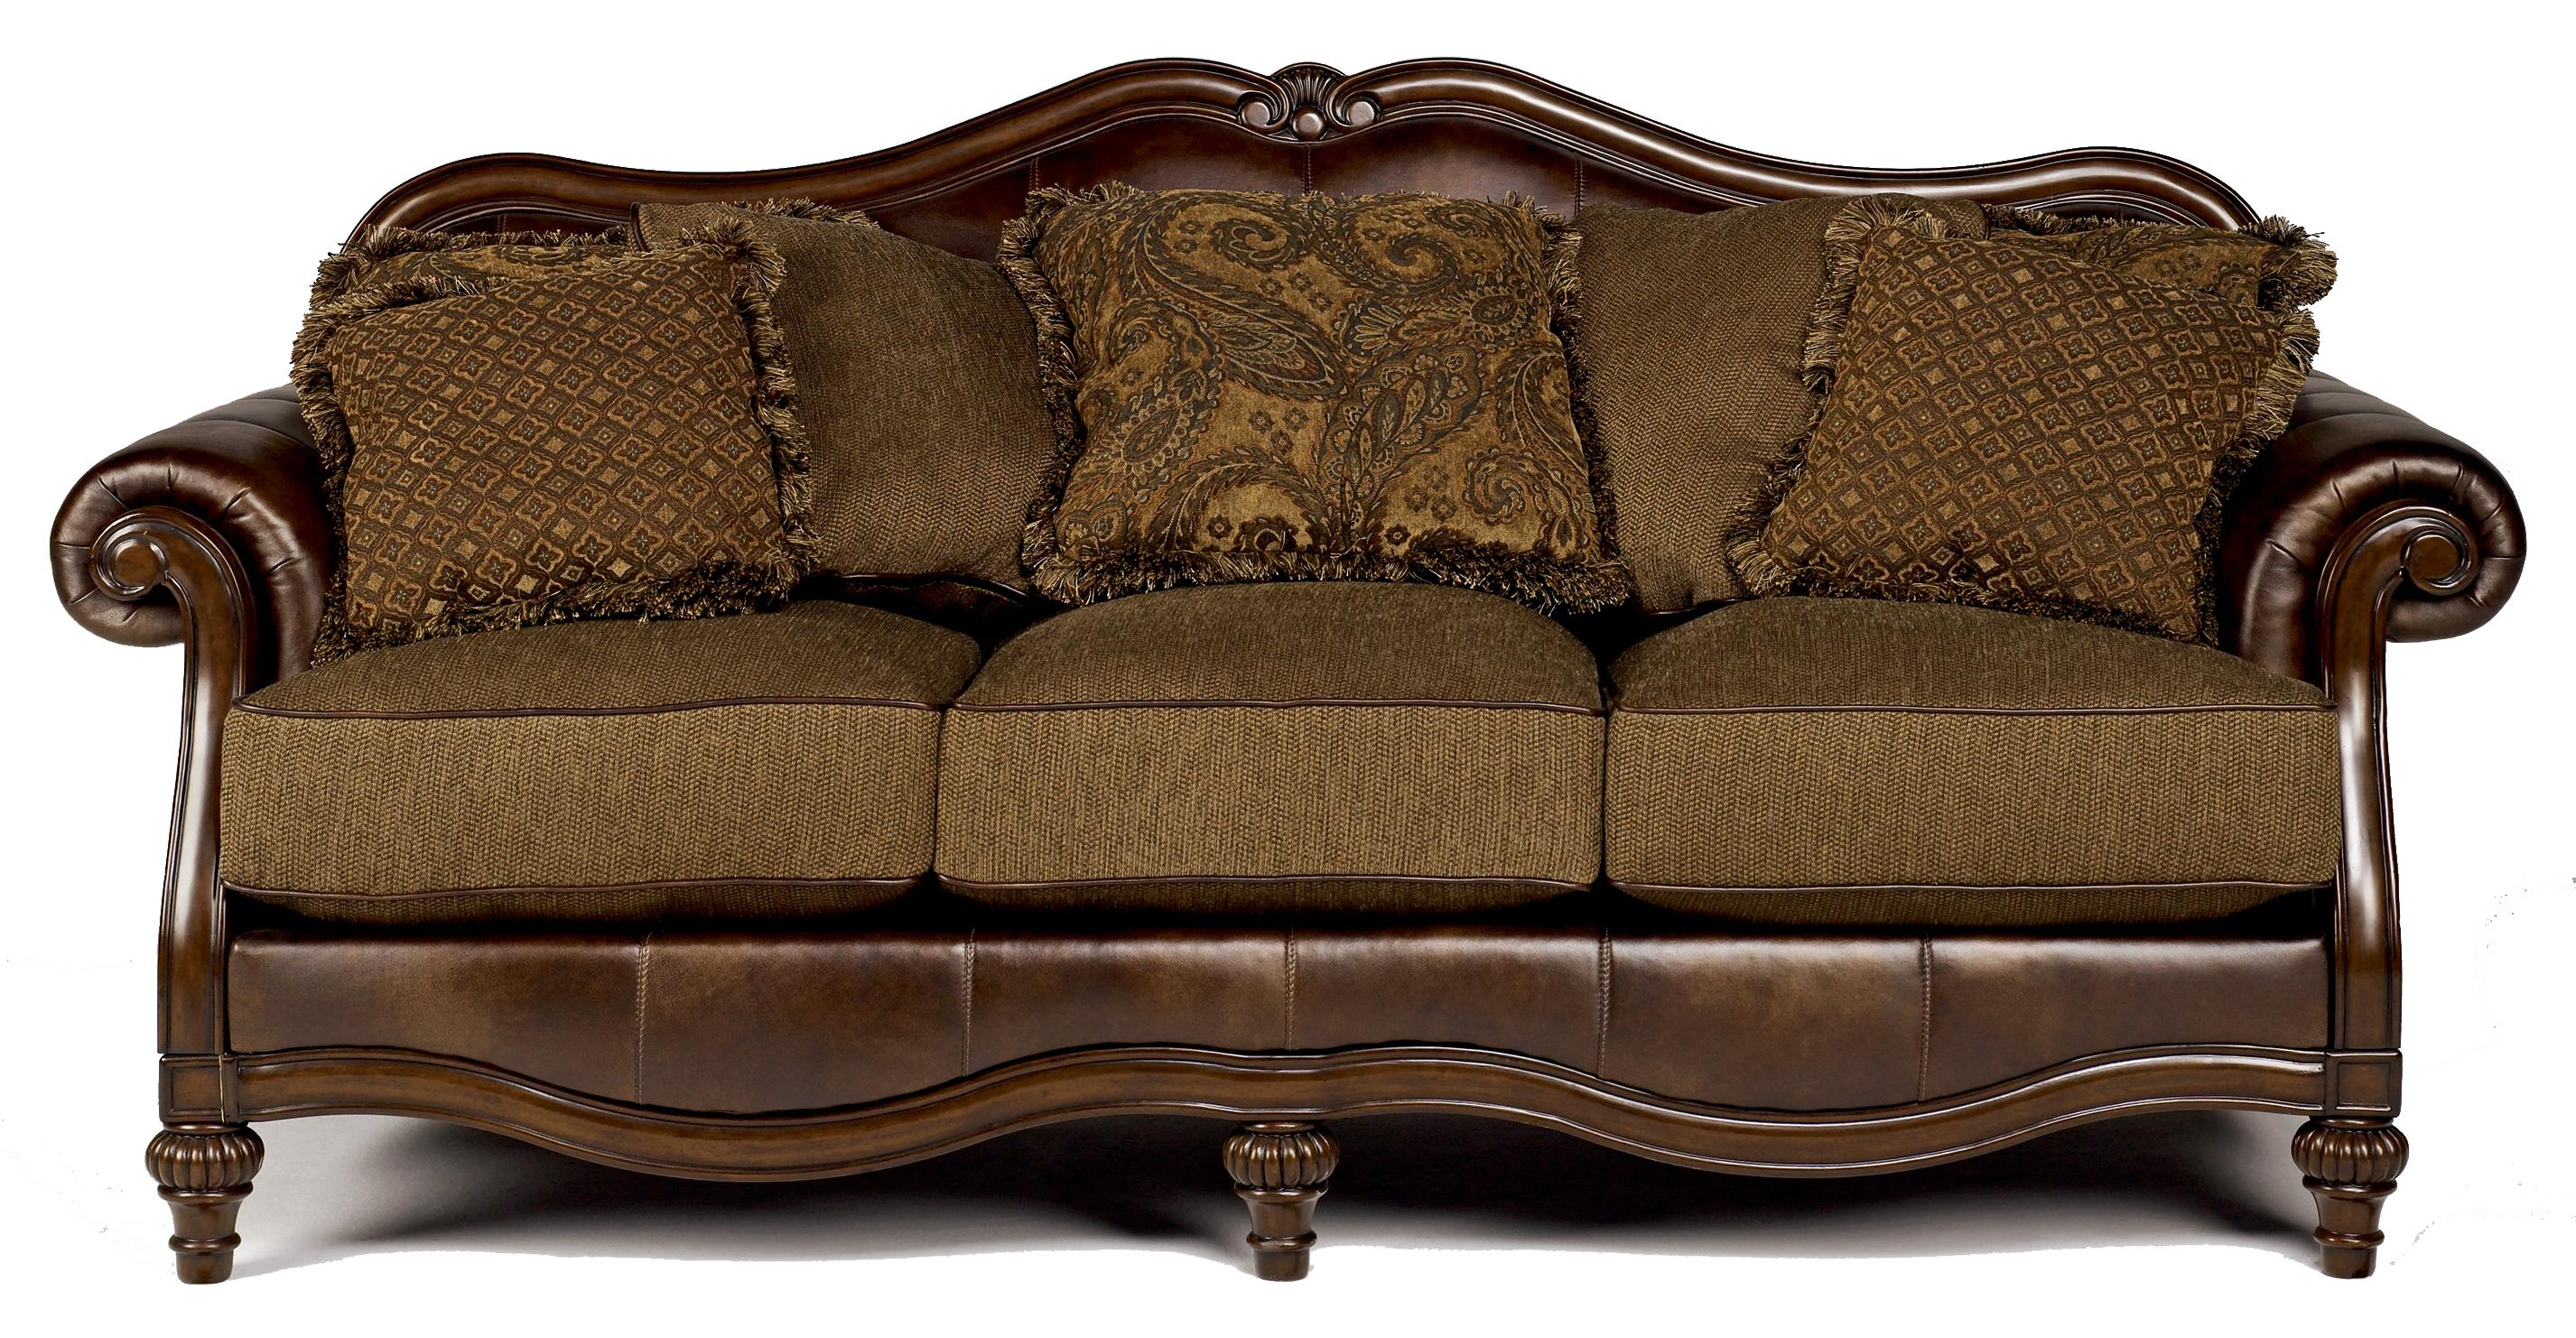 Signature Design by Ashley Claremore - Antique Sofa - Item Number: 8430338